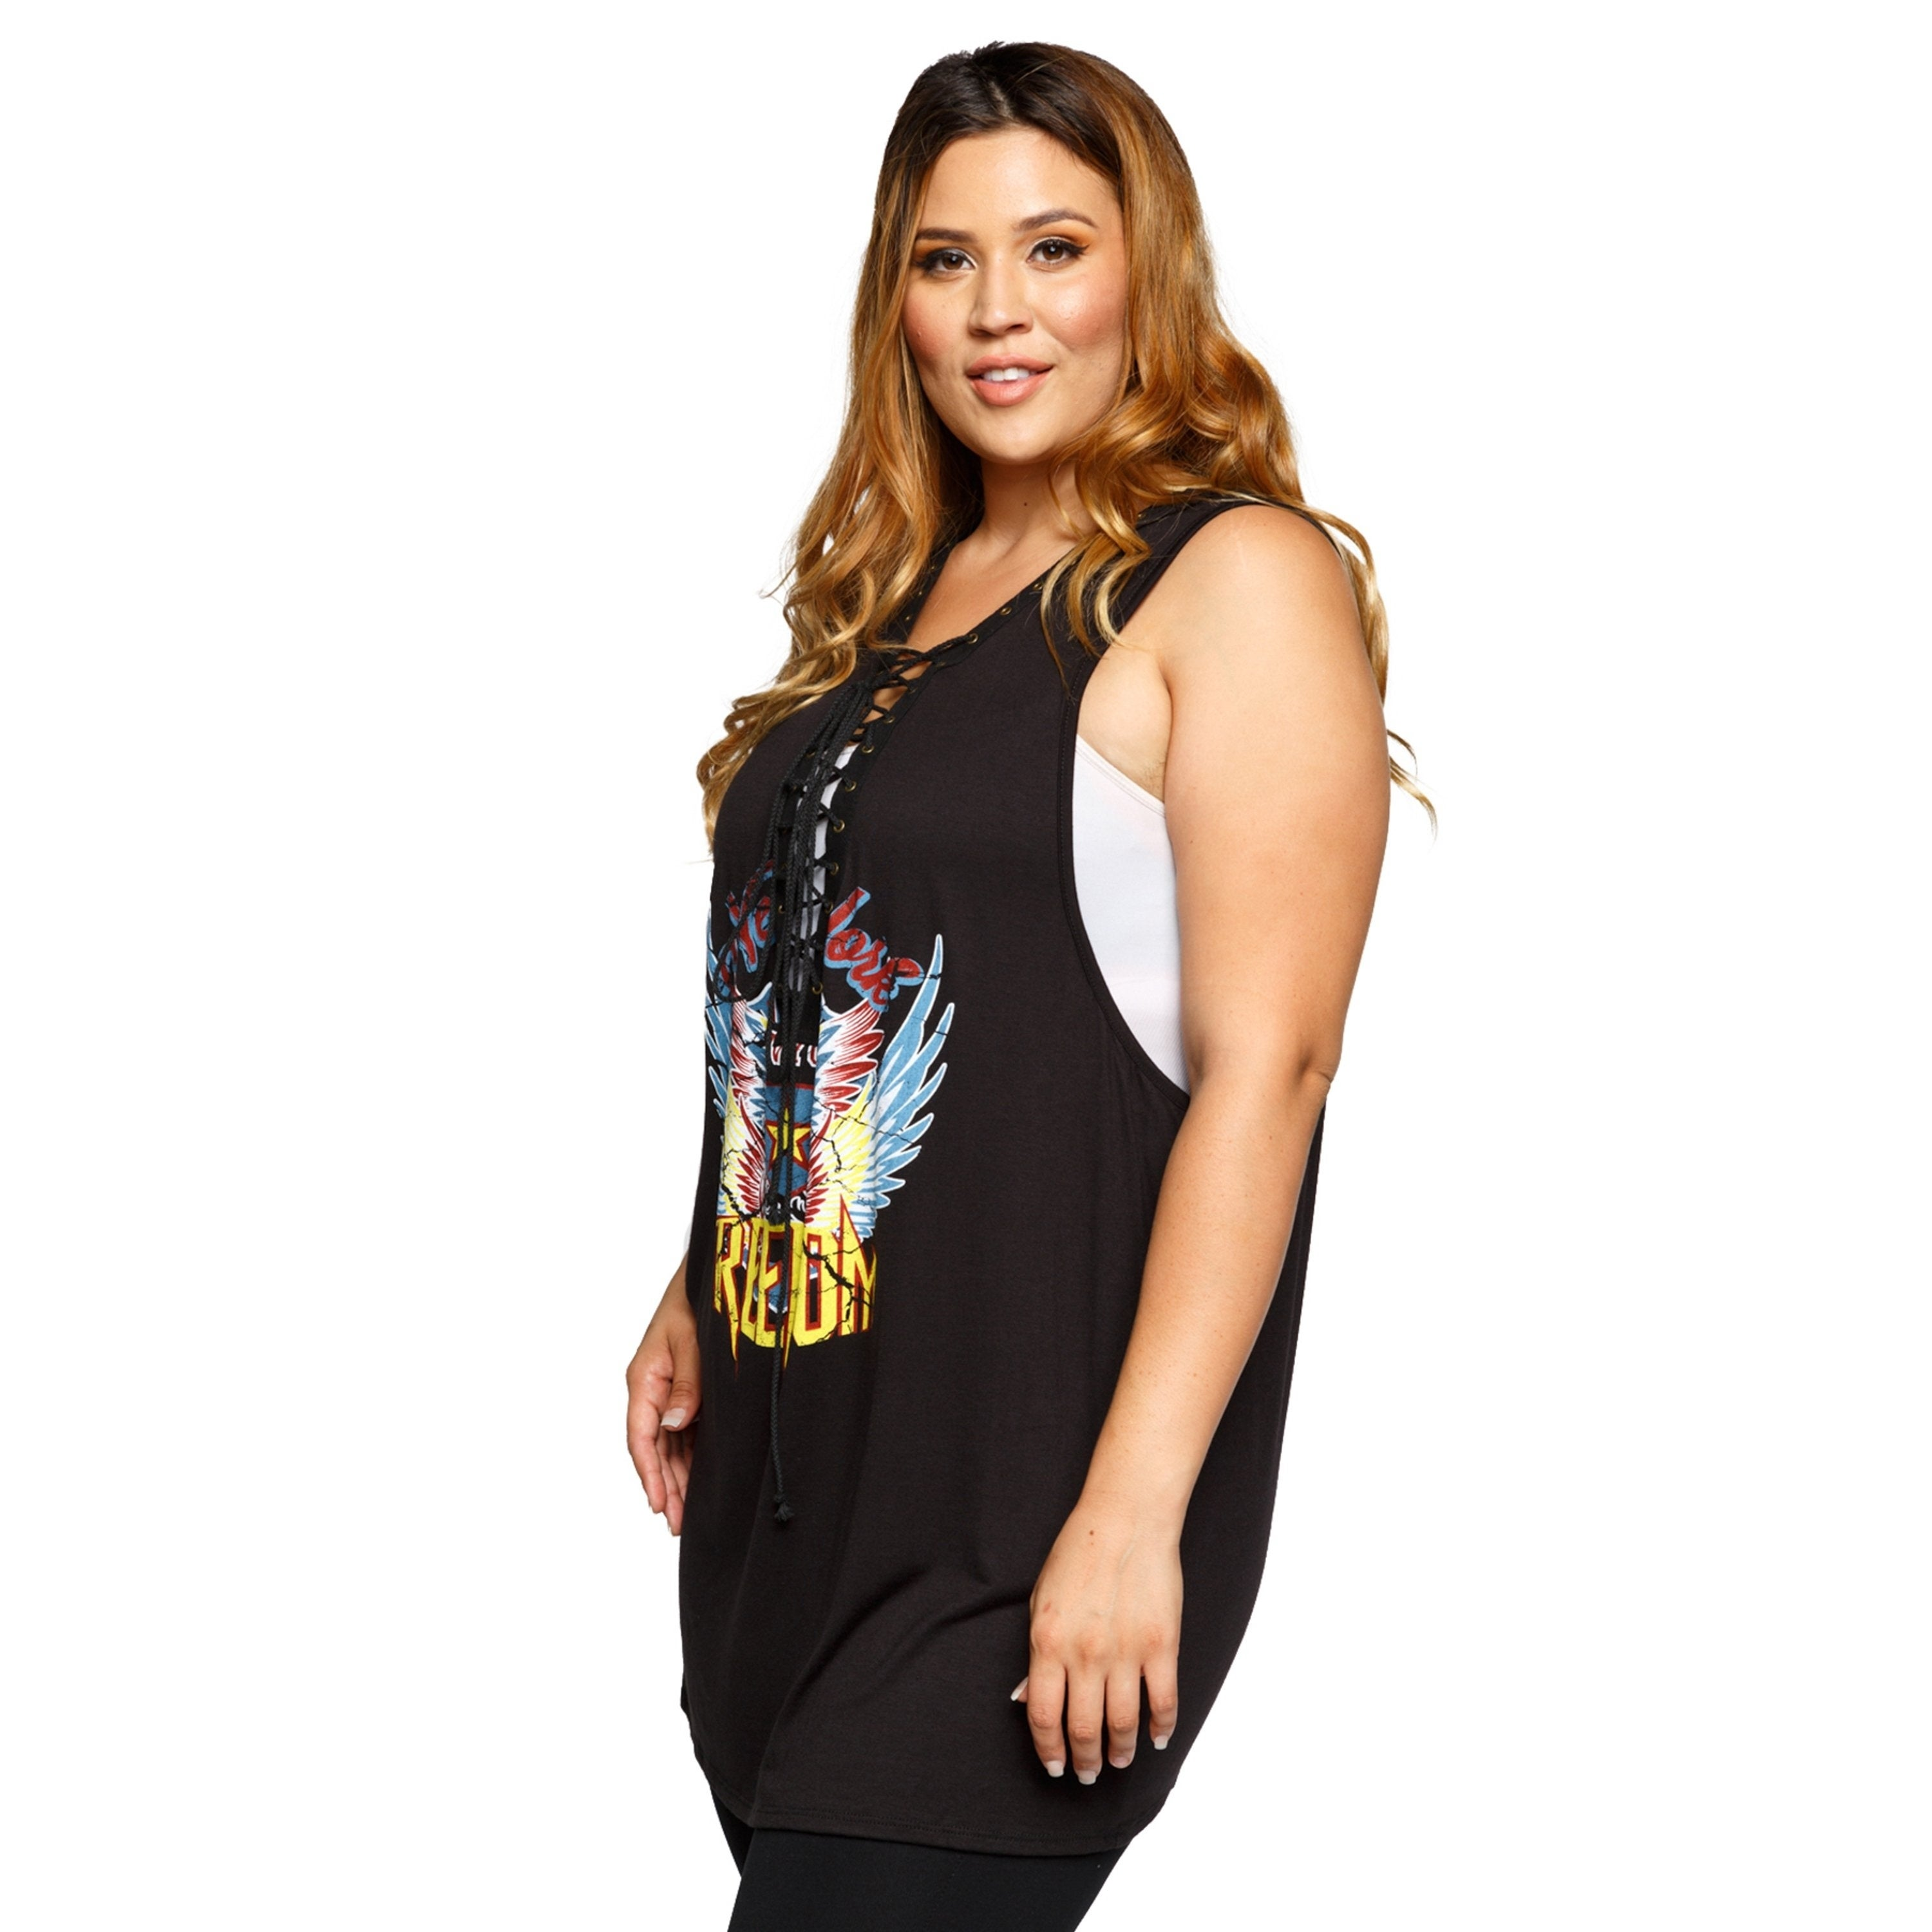 244a98e953d Shop Xehar Womens Plus Size Sleeveless NYC Freedom Graphic Print Tank Top -  Free Shipping On Orders Over  45 - Overstock.com - 17619588